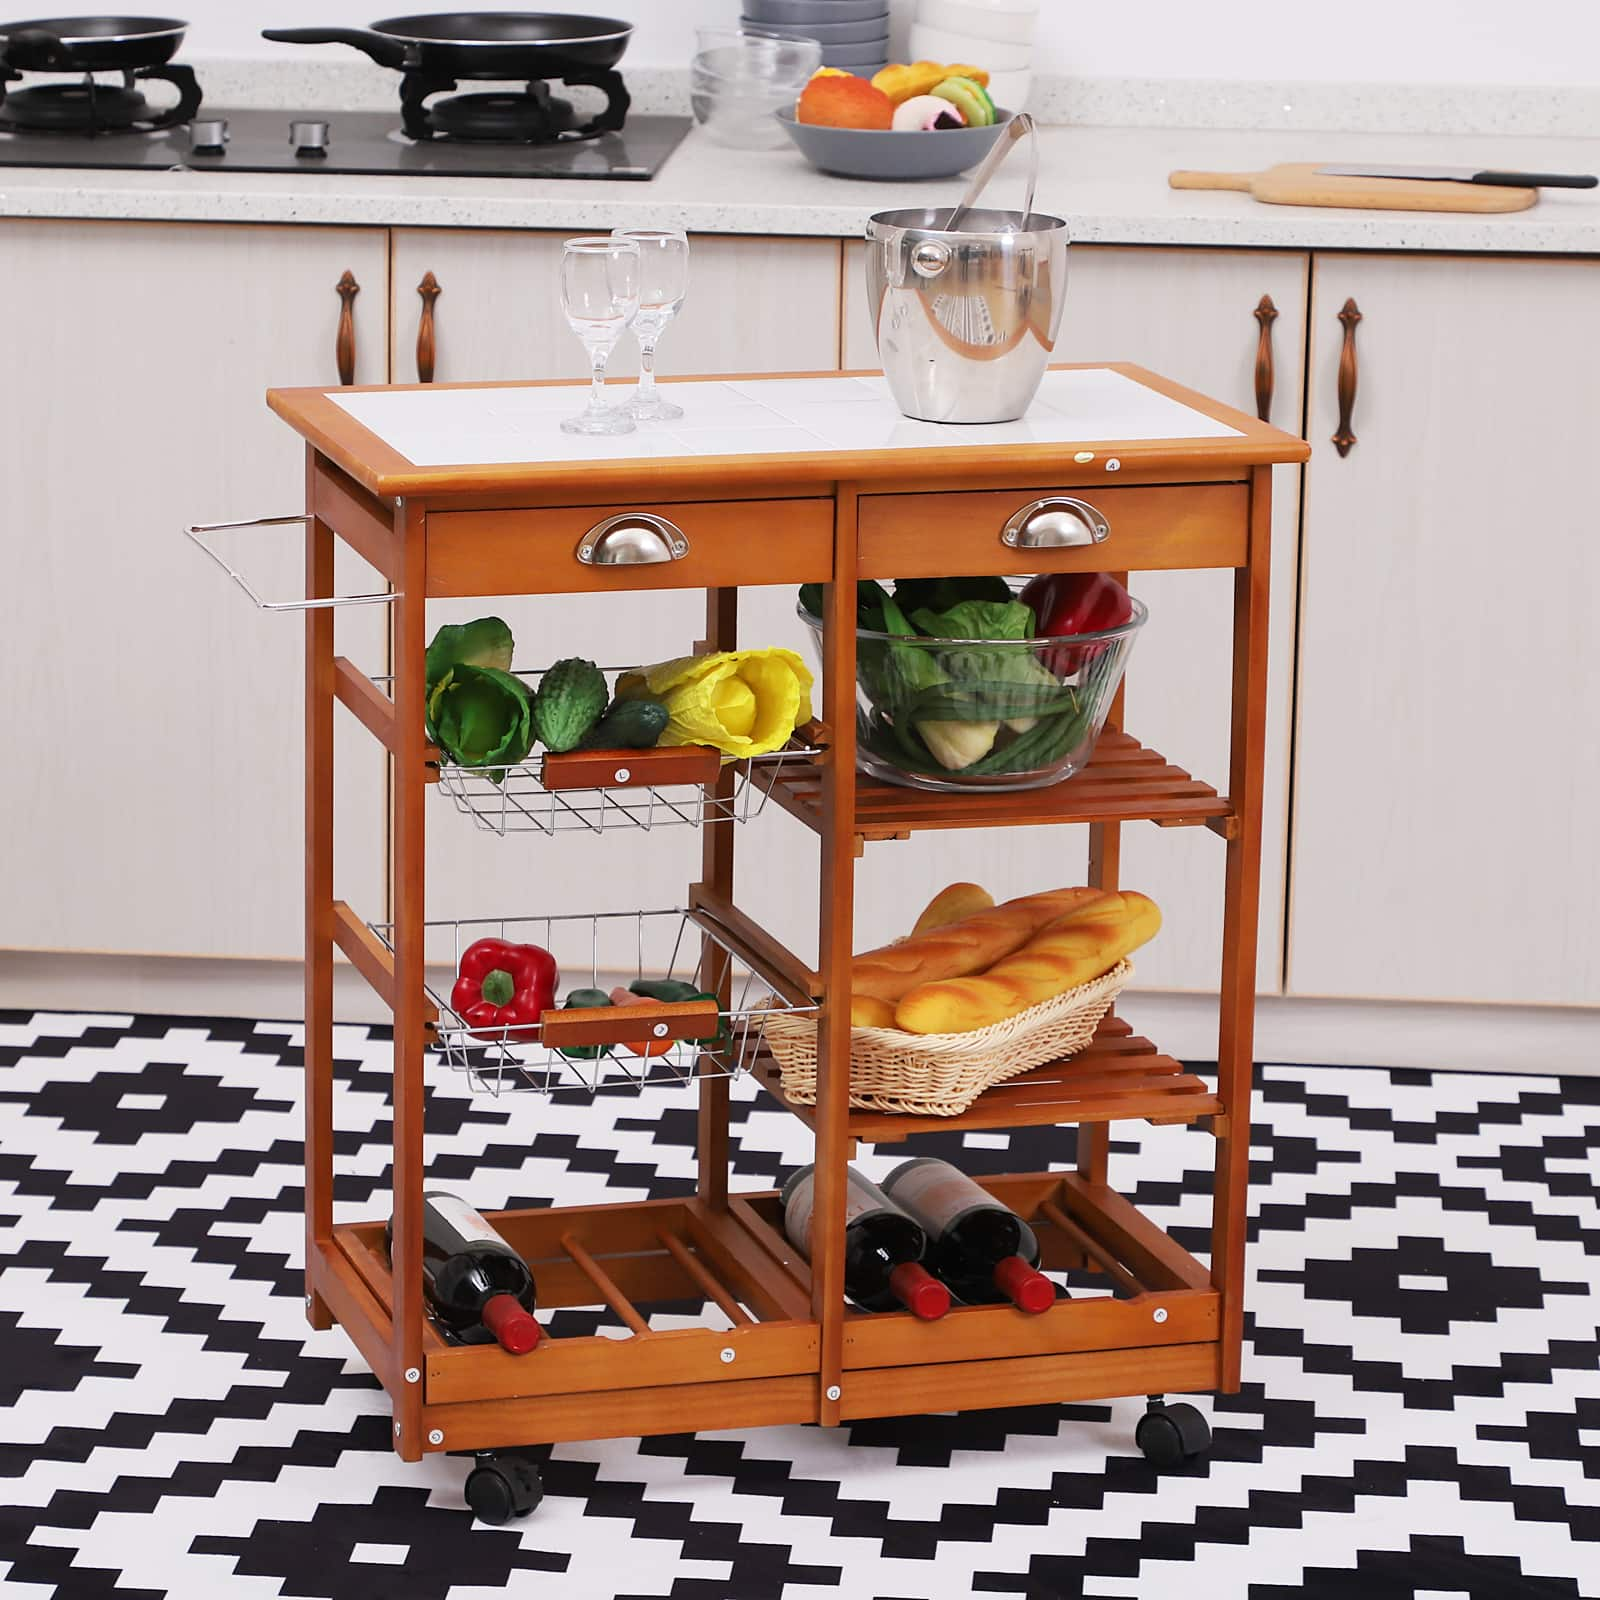 "HomCom 30"" Wooden Rolling Kitchen Organizer Cart with Wine Rack - $54.99 + Free Shipping"